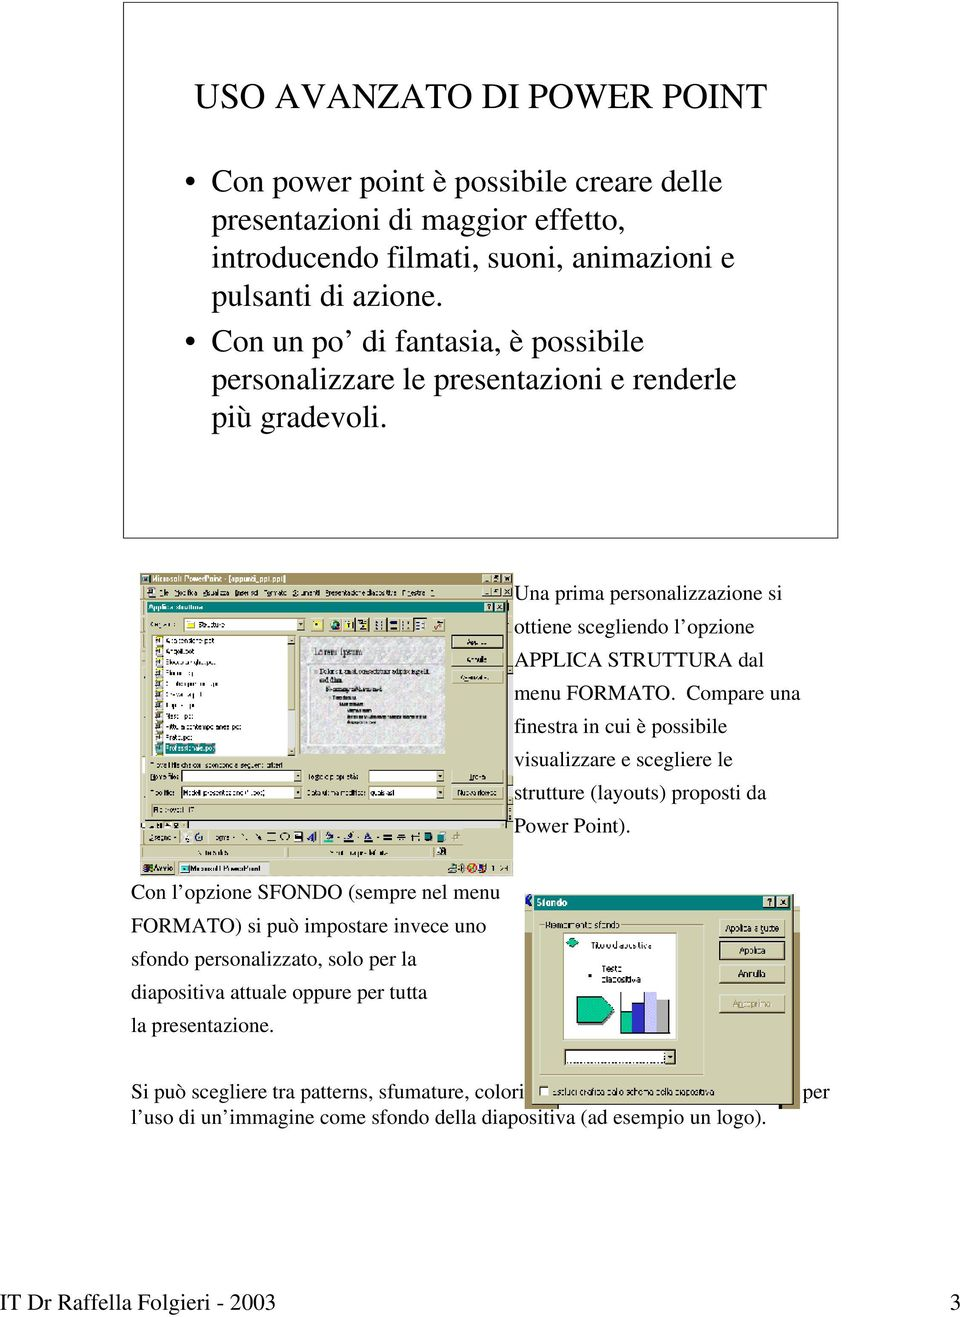 Power point short user manual come creare un animazione - Si puo dividere una finestra in due ...